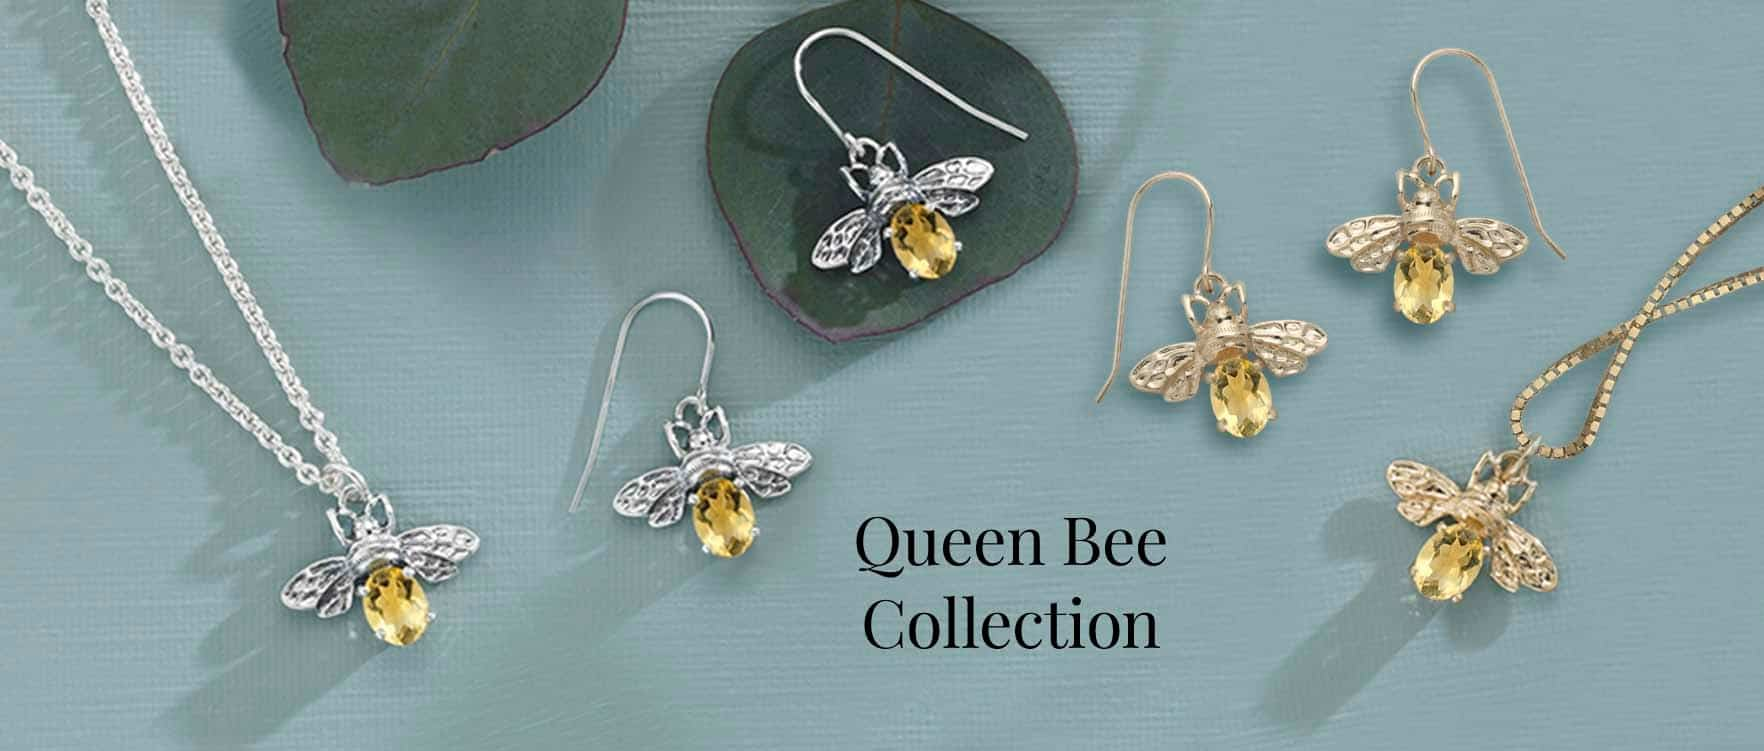 queen-bee-collection.jpg